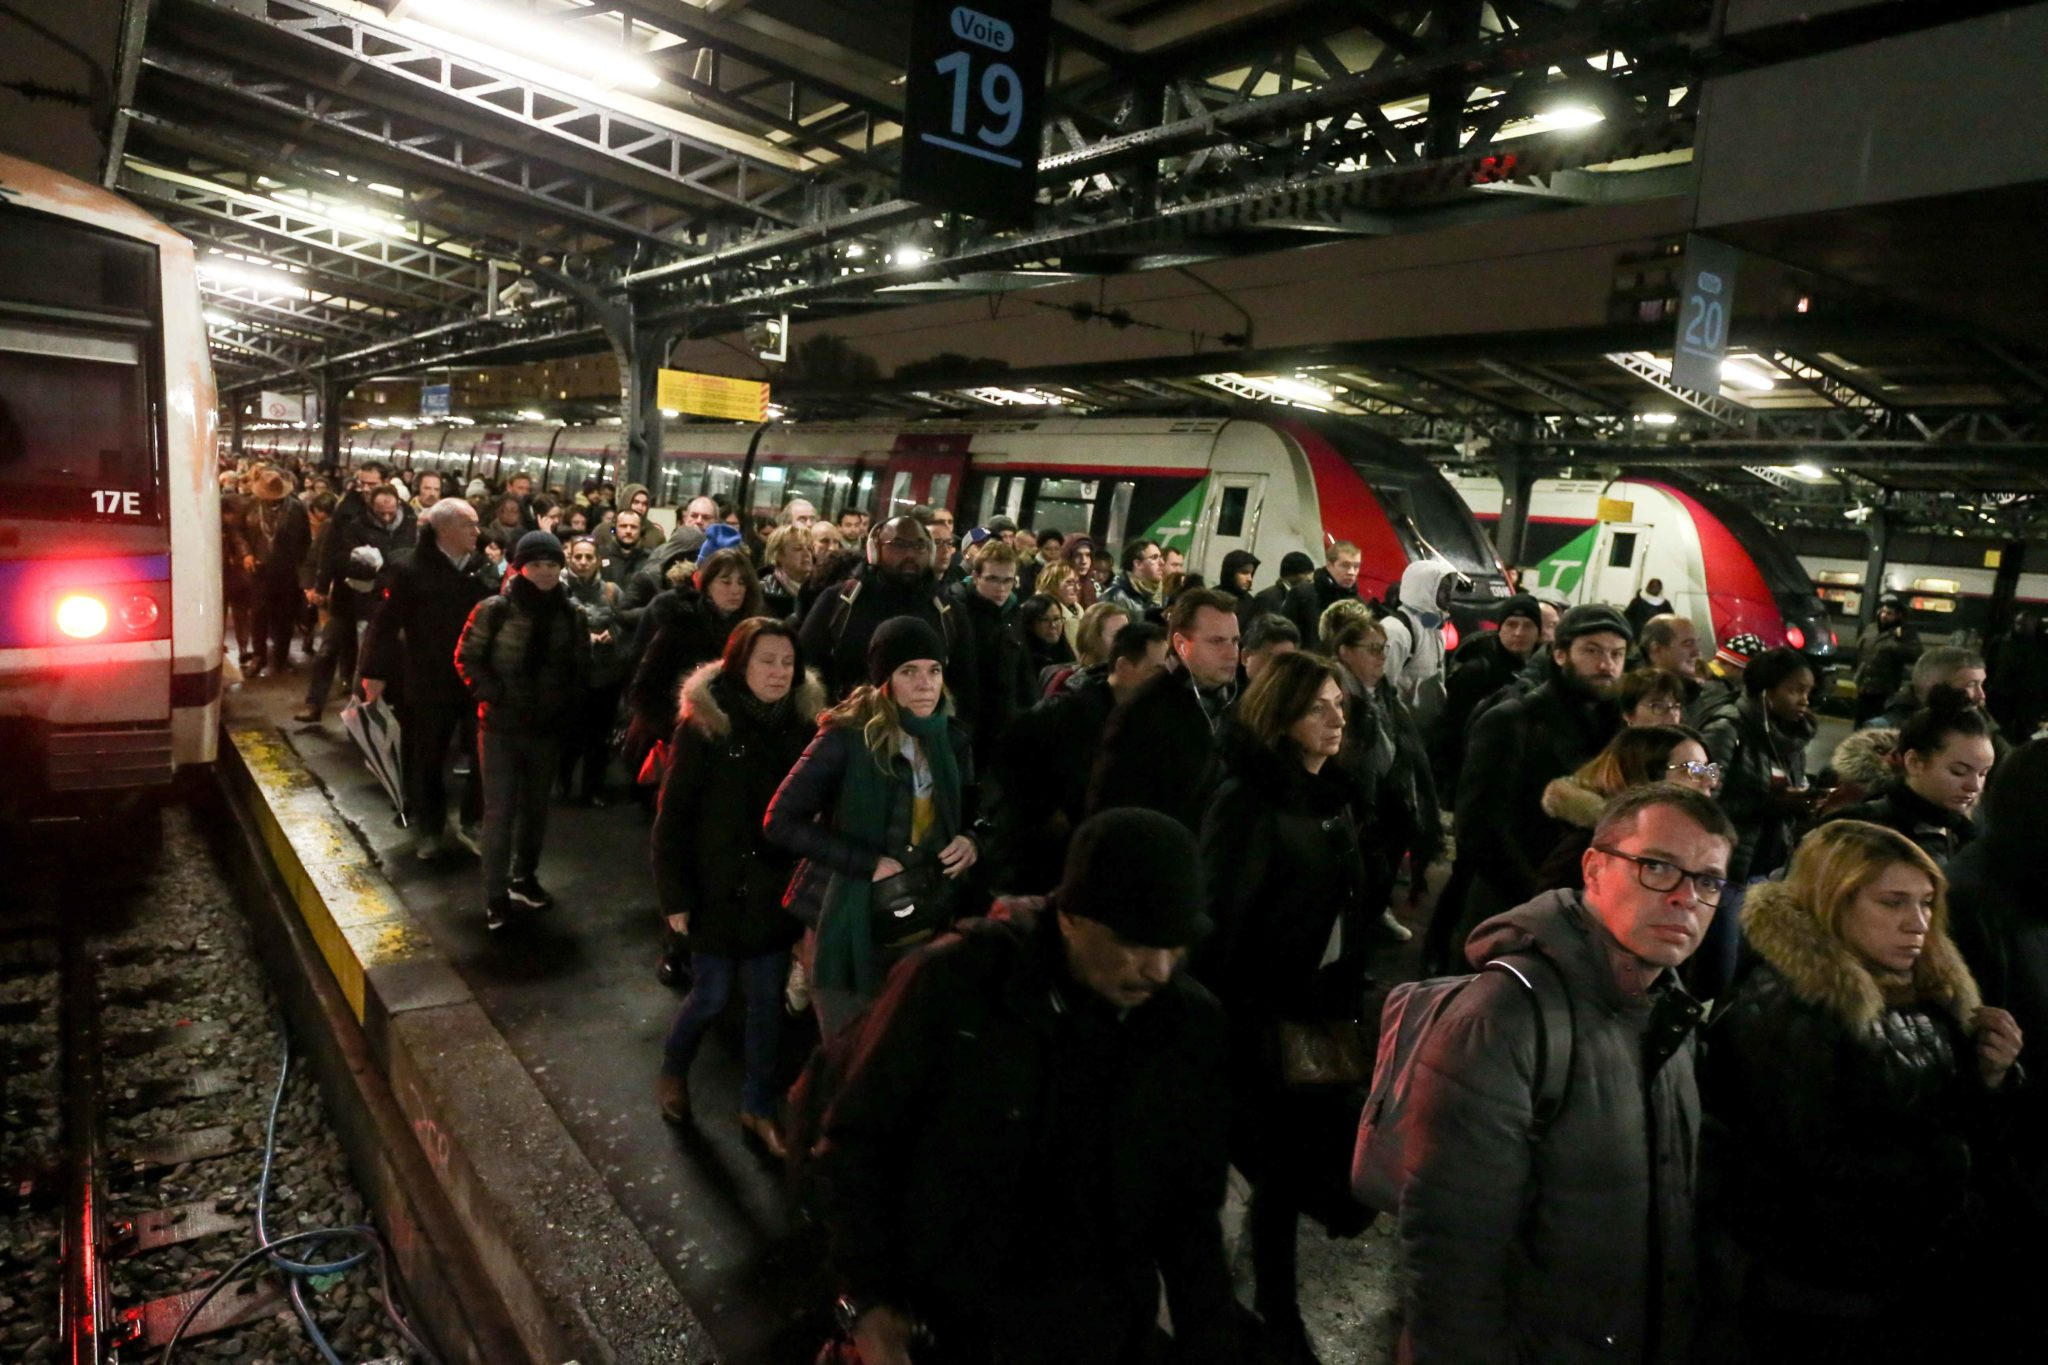 Les usagers descendent d'un train à la Gare du Nord. © Michel Stoupak. Lun 09.12.2019, 07:44:51.